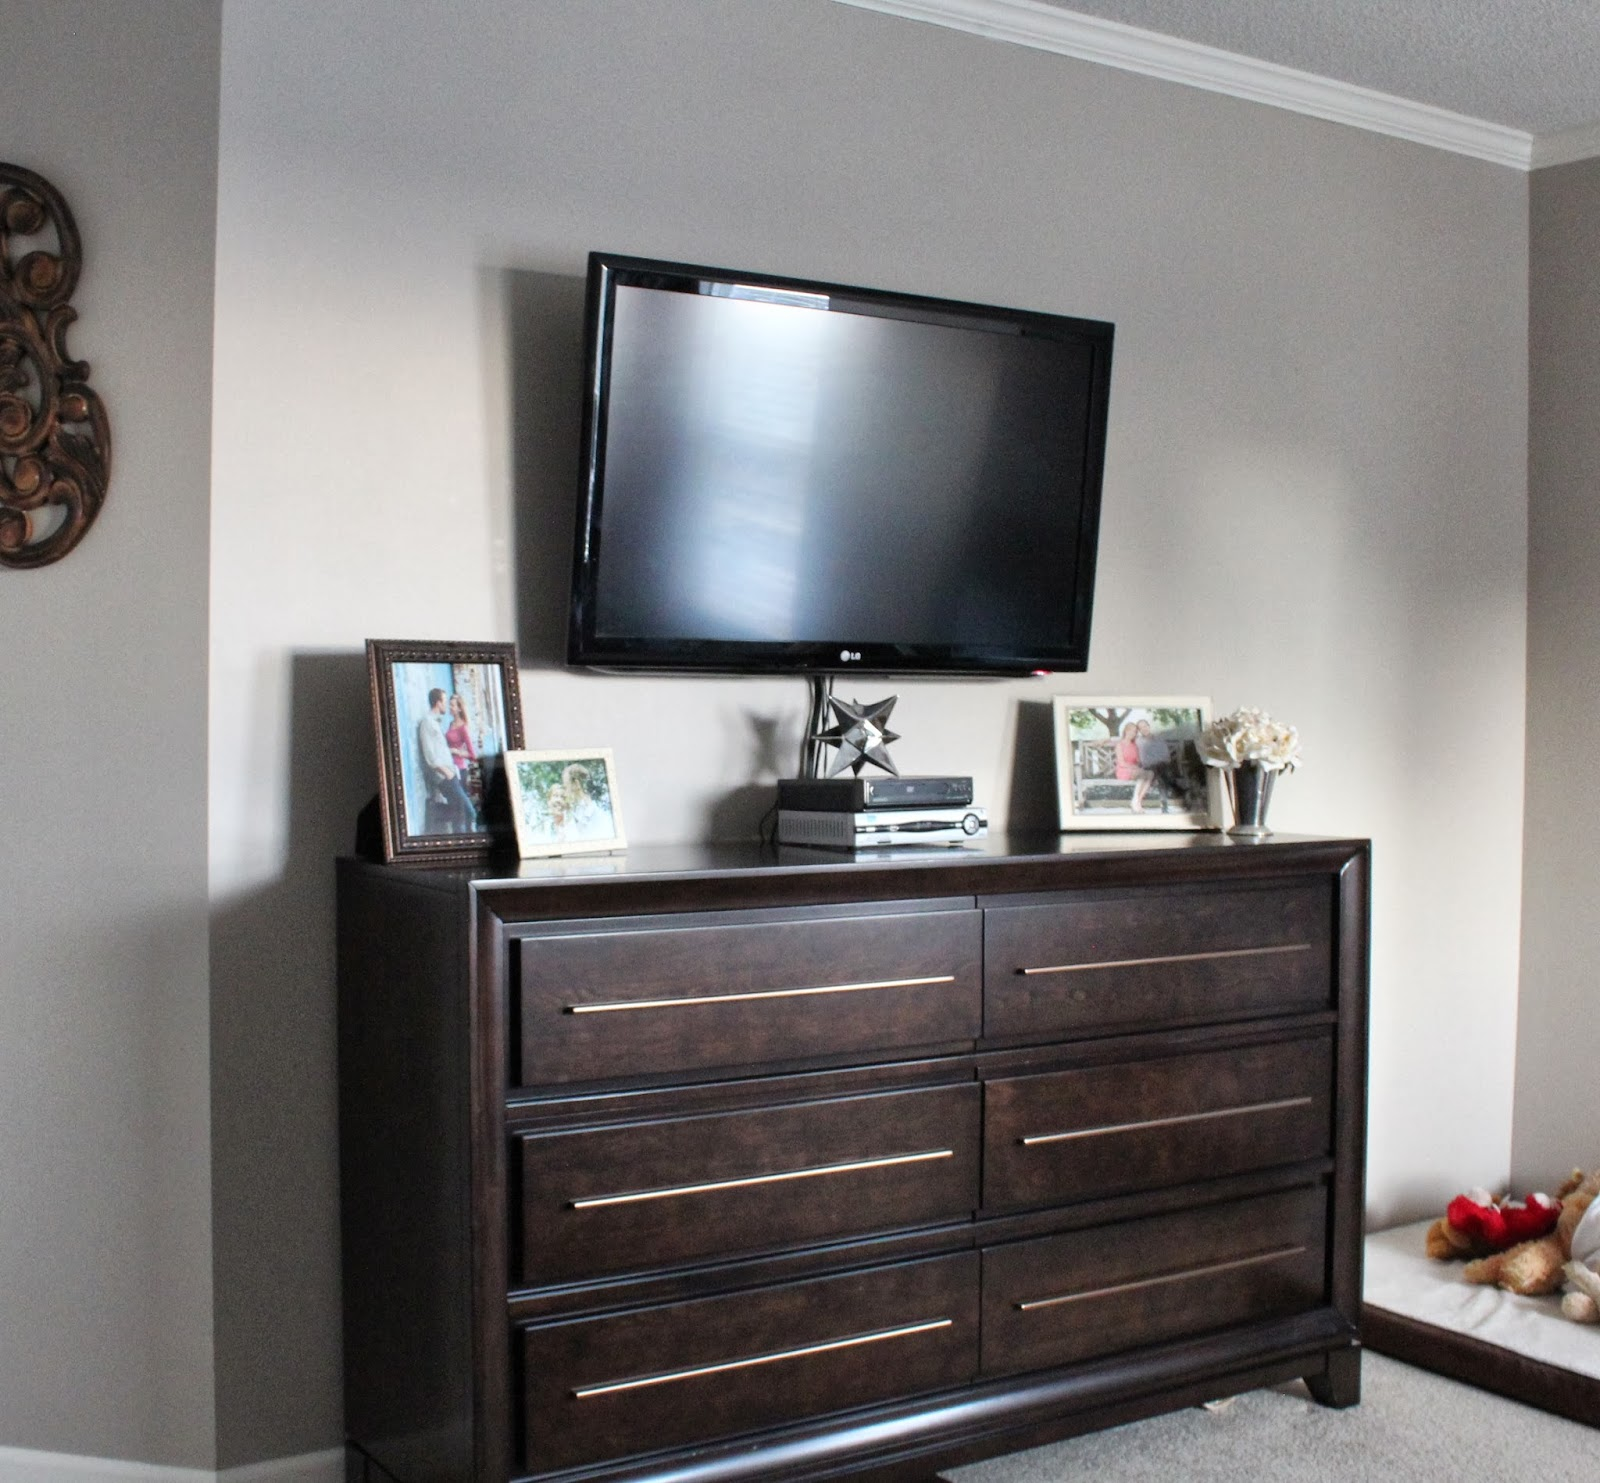 Dresser With Tv Mount